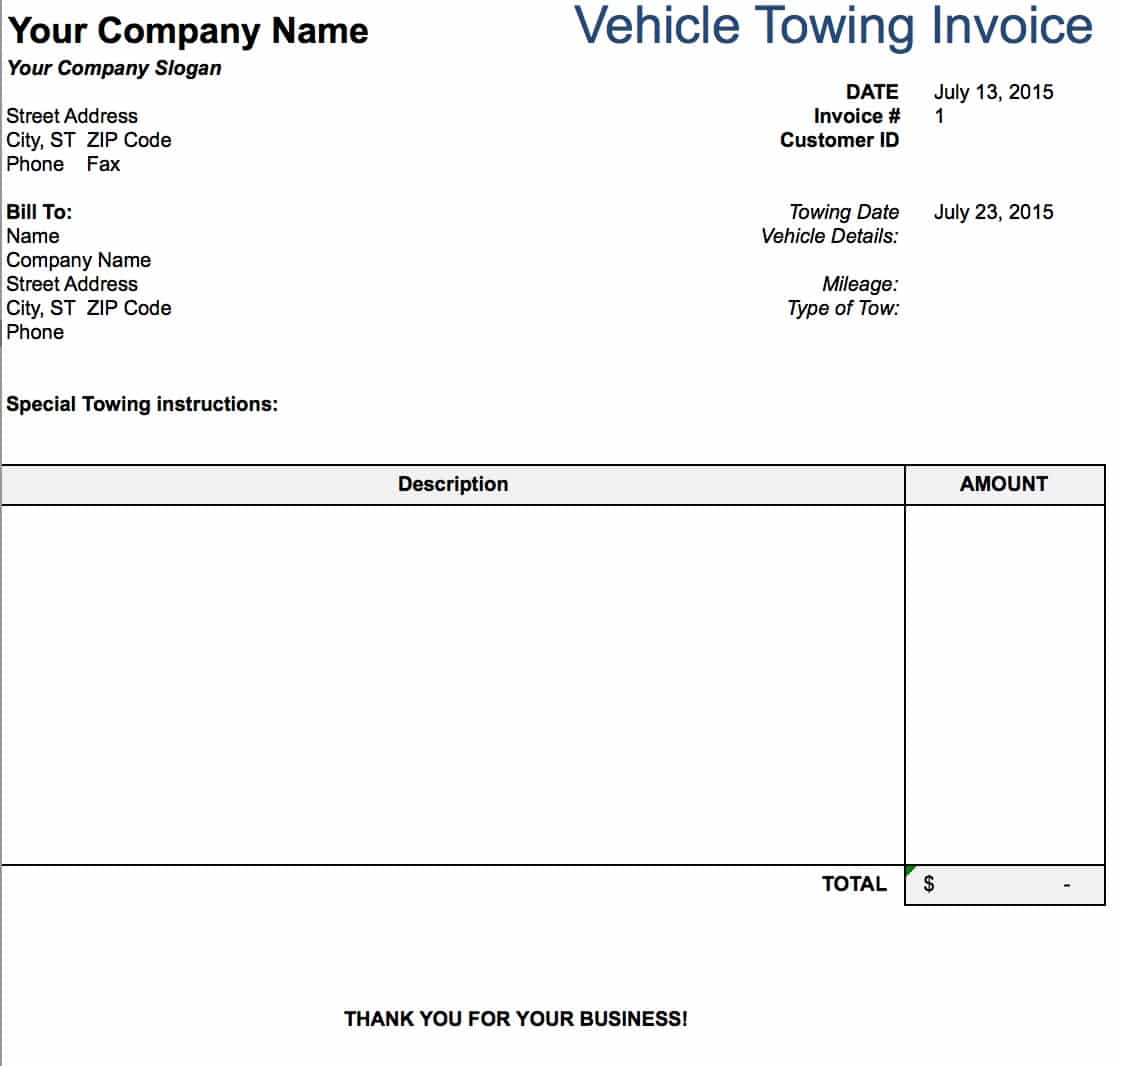 Free Tow Service Invoice Template Excel PDF Word Doc - Free word document invoice template for service business